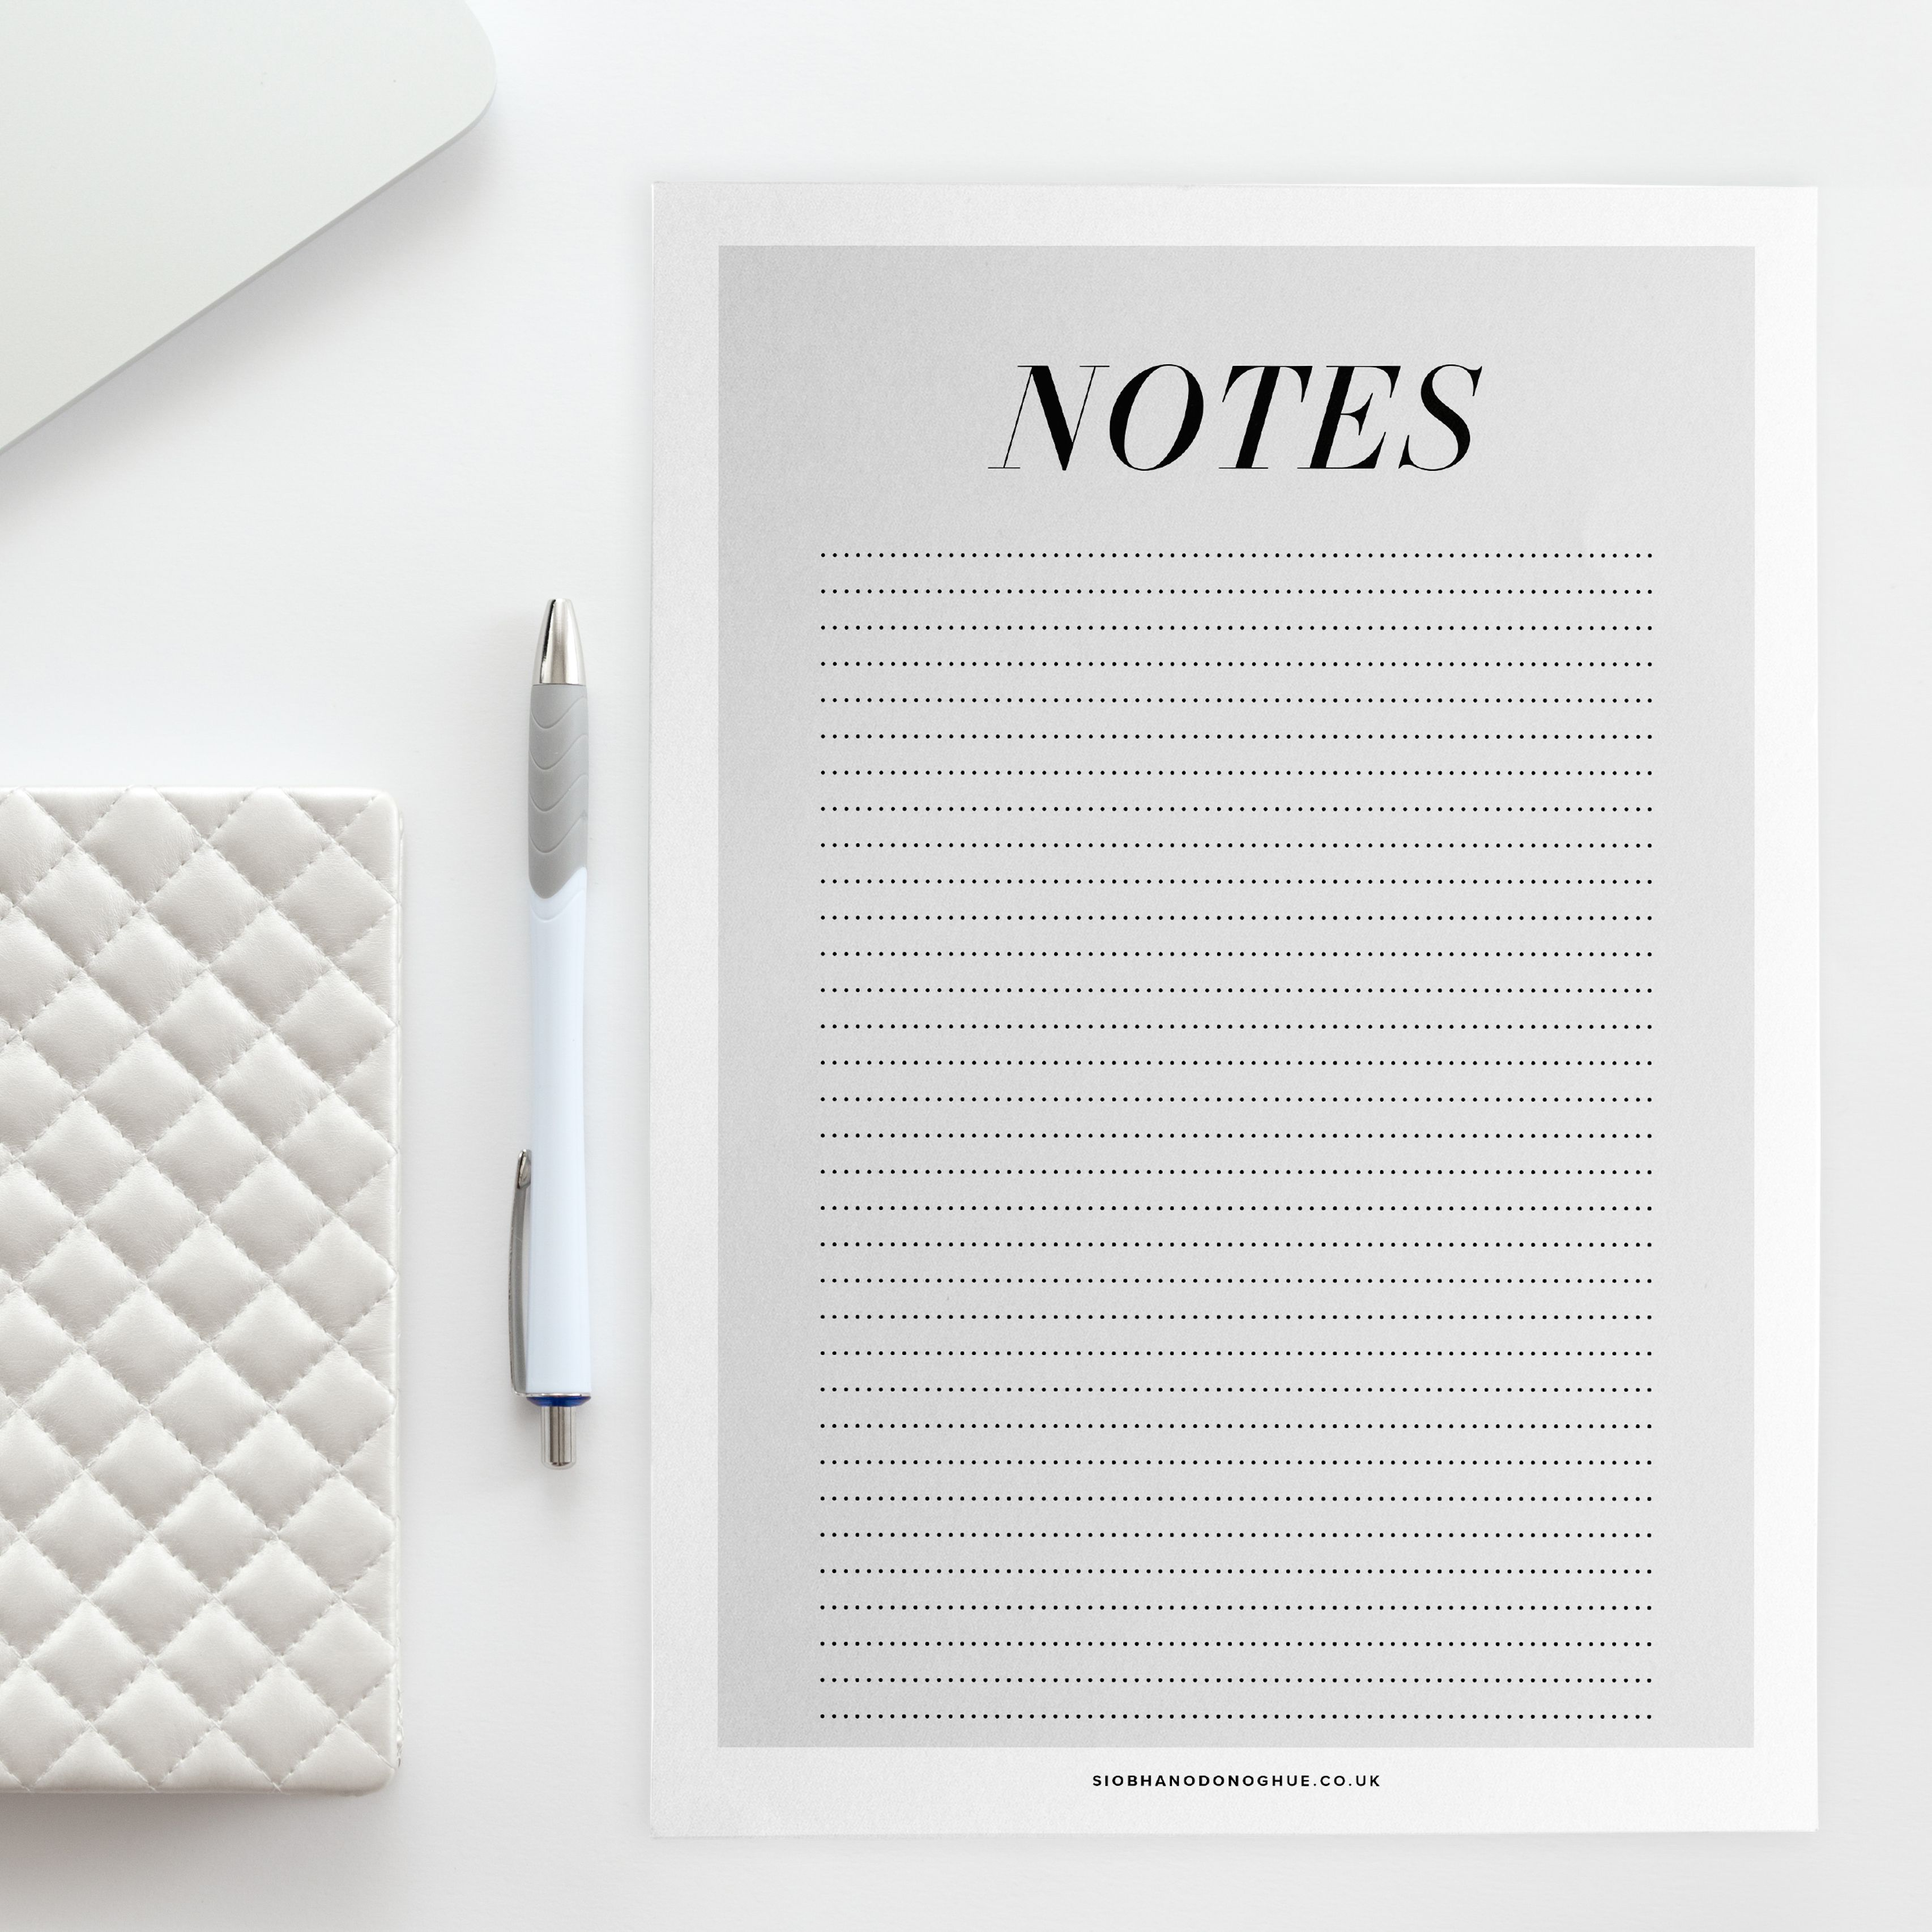 Notes pages free to download as part of the fashion work planner set